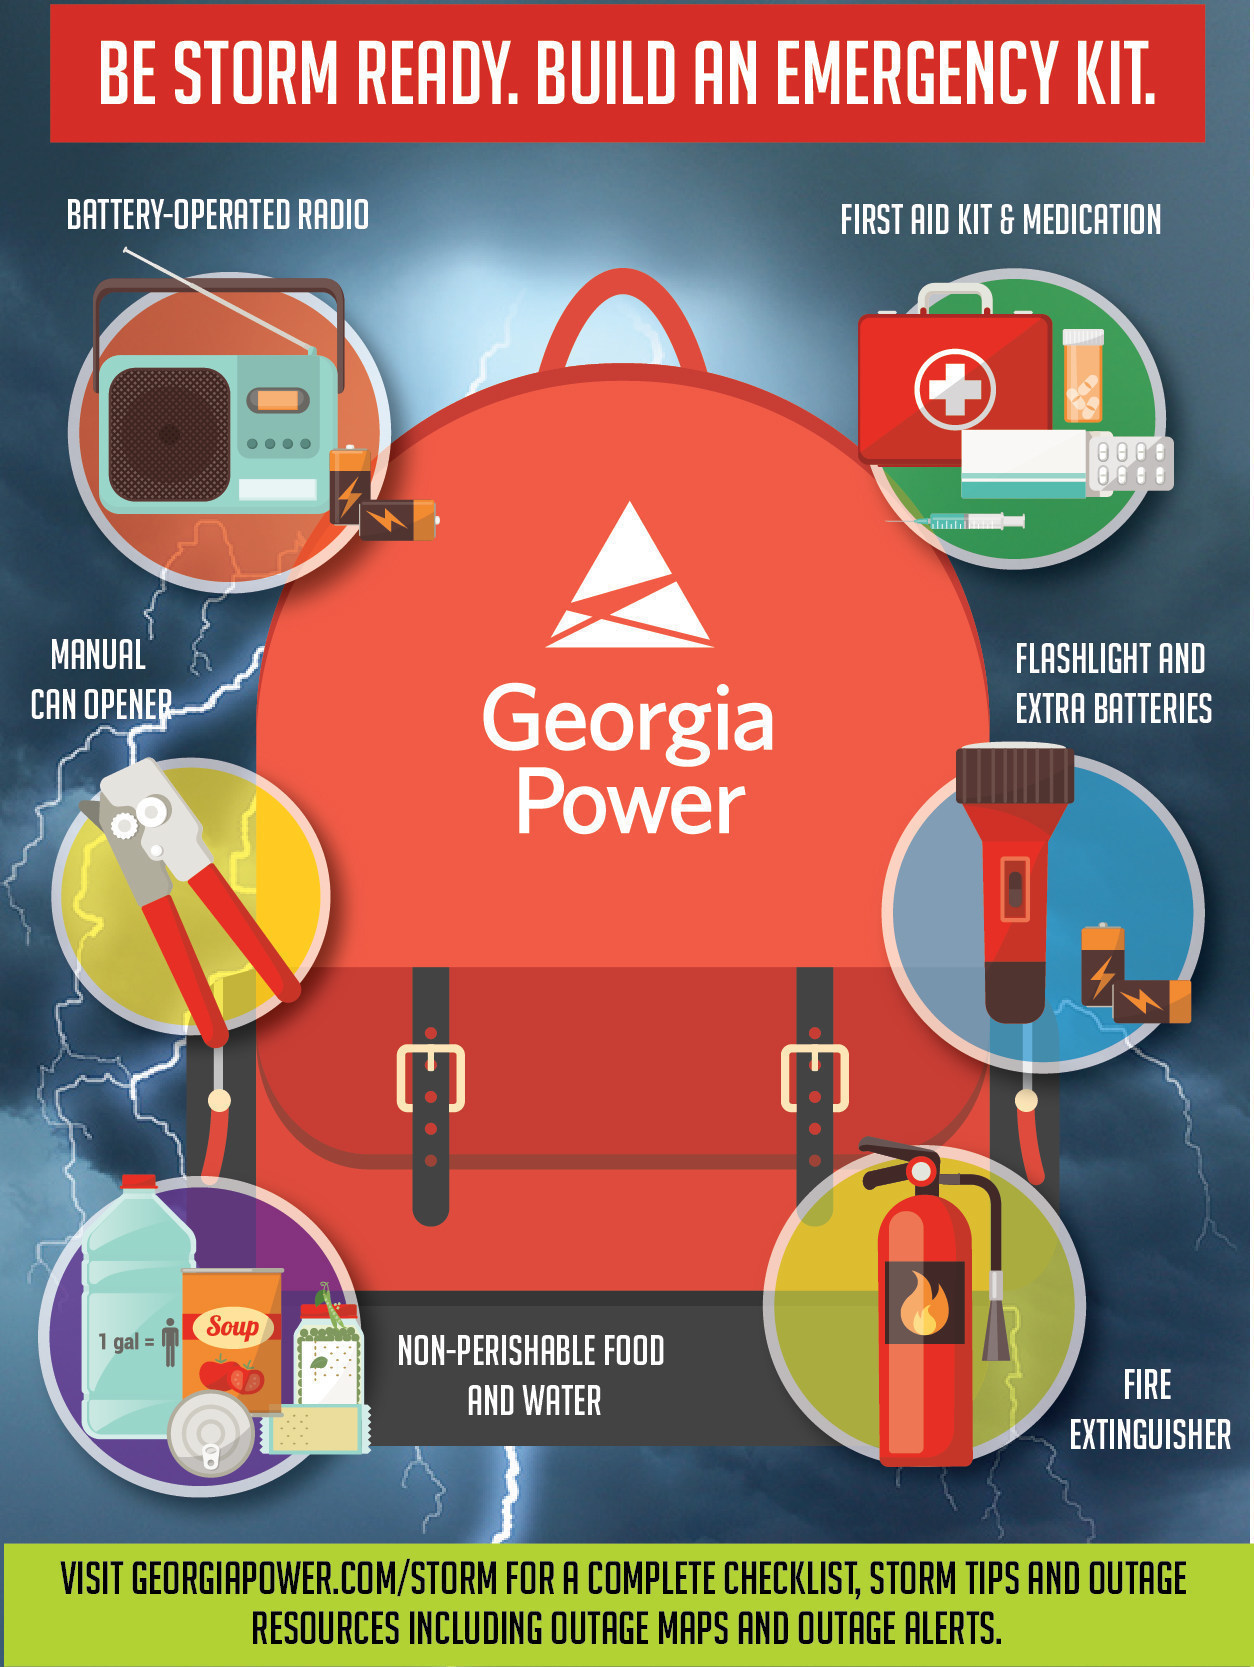 Visit GeorgiaPower.com/Storm for a complete checklist, storm tips and outage resources including Outage Maps and Outage Alerts.